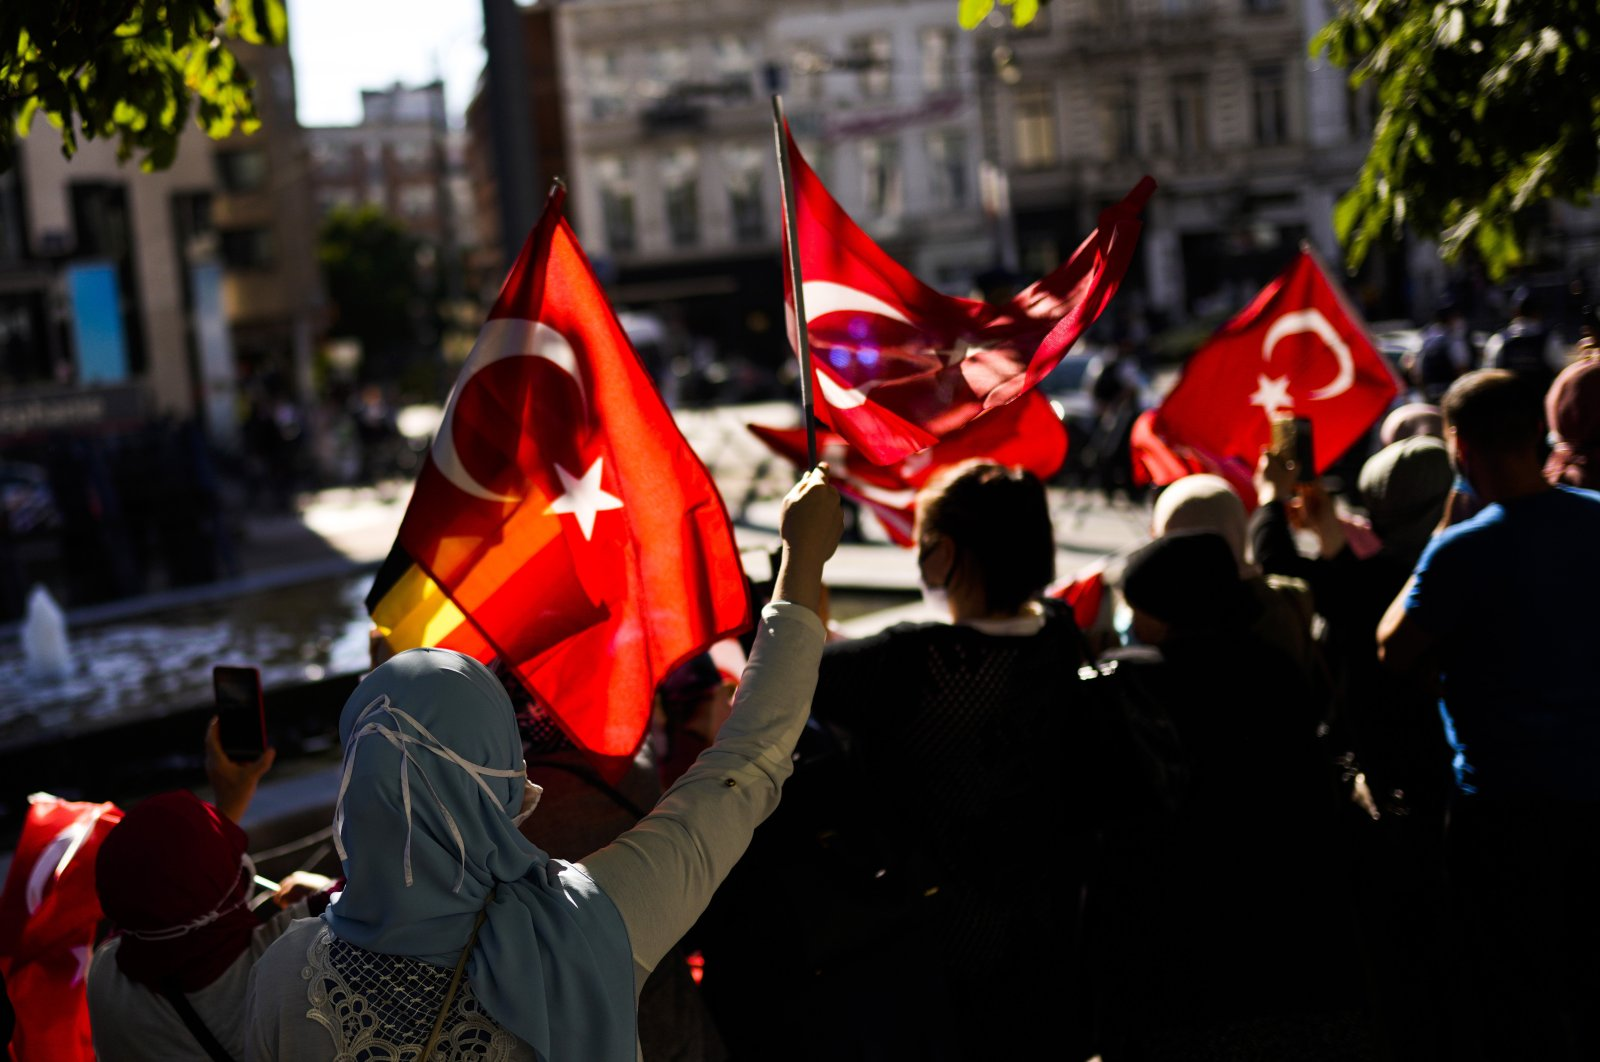 Supporters wave Turkish flags as Turkey's President Recep Tayyip Erdoğan arrives at the NATO summit in Brussels, Belgium, Sunday, June 13, 2021. (AP Photo)